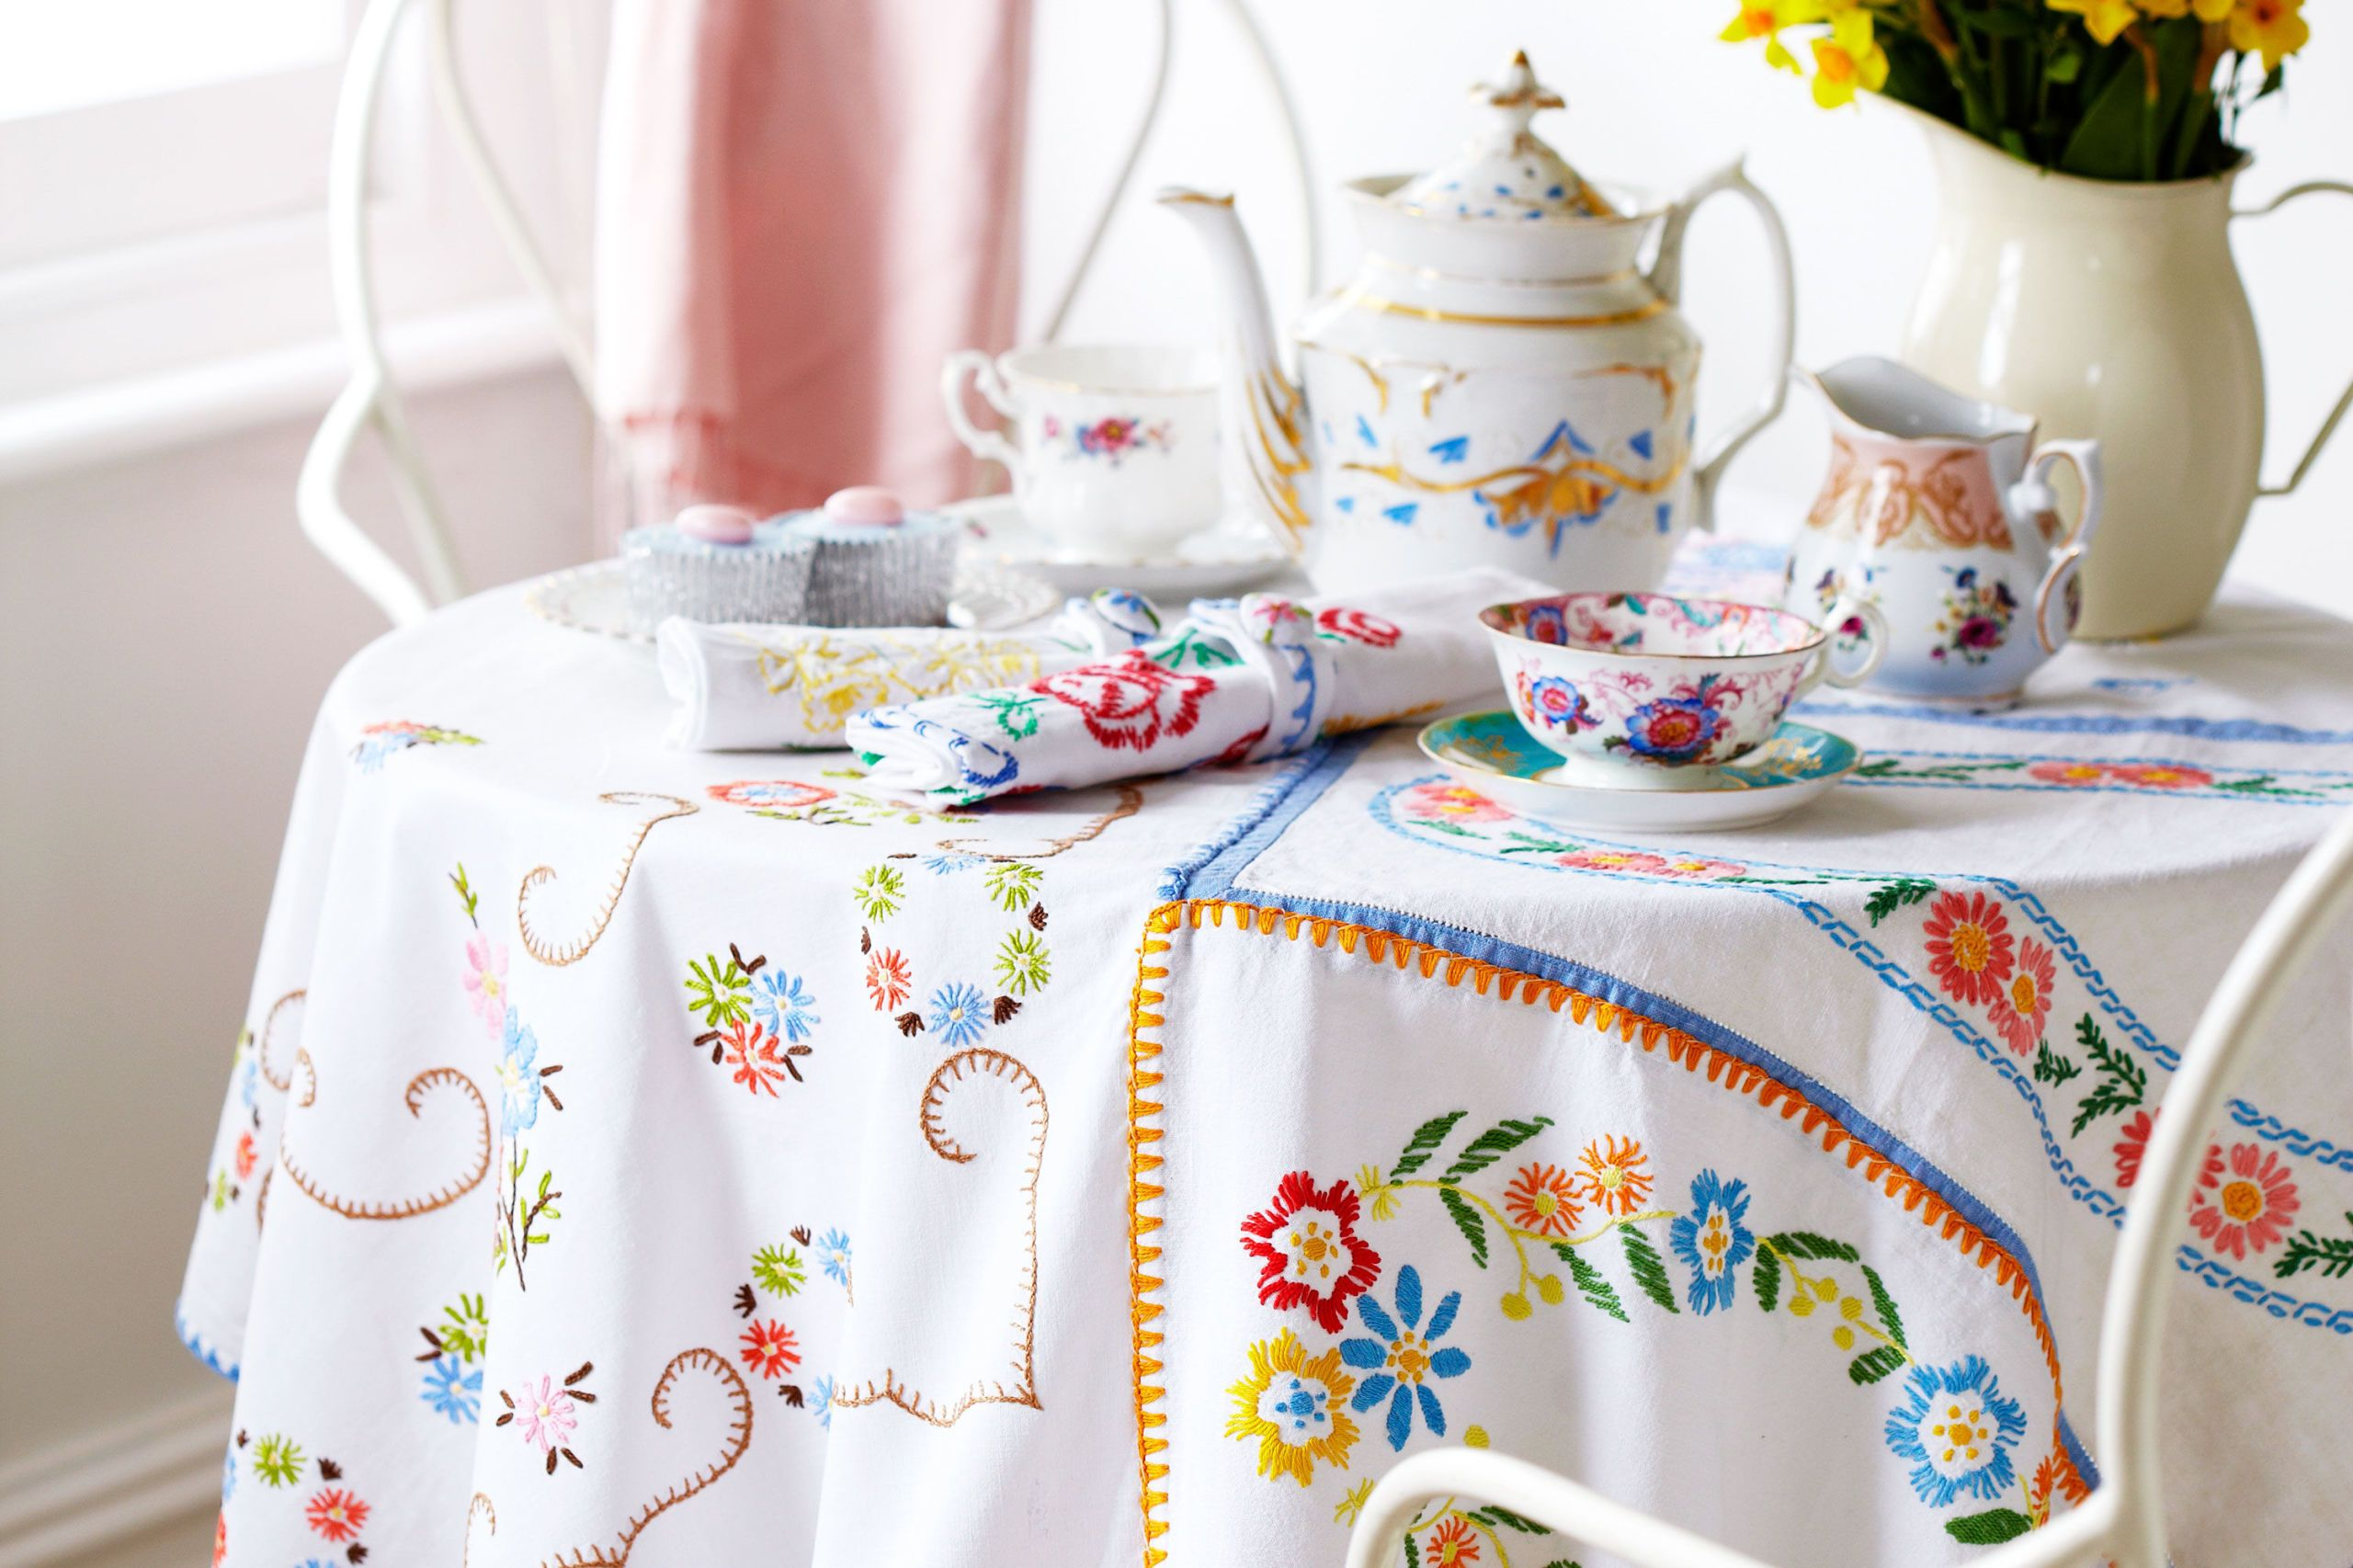 Table cloth & How to make vintage-style tablecloths and napkins